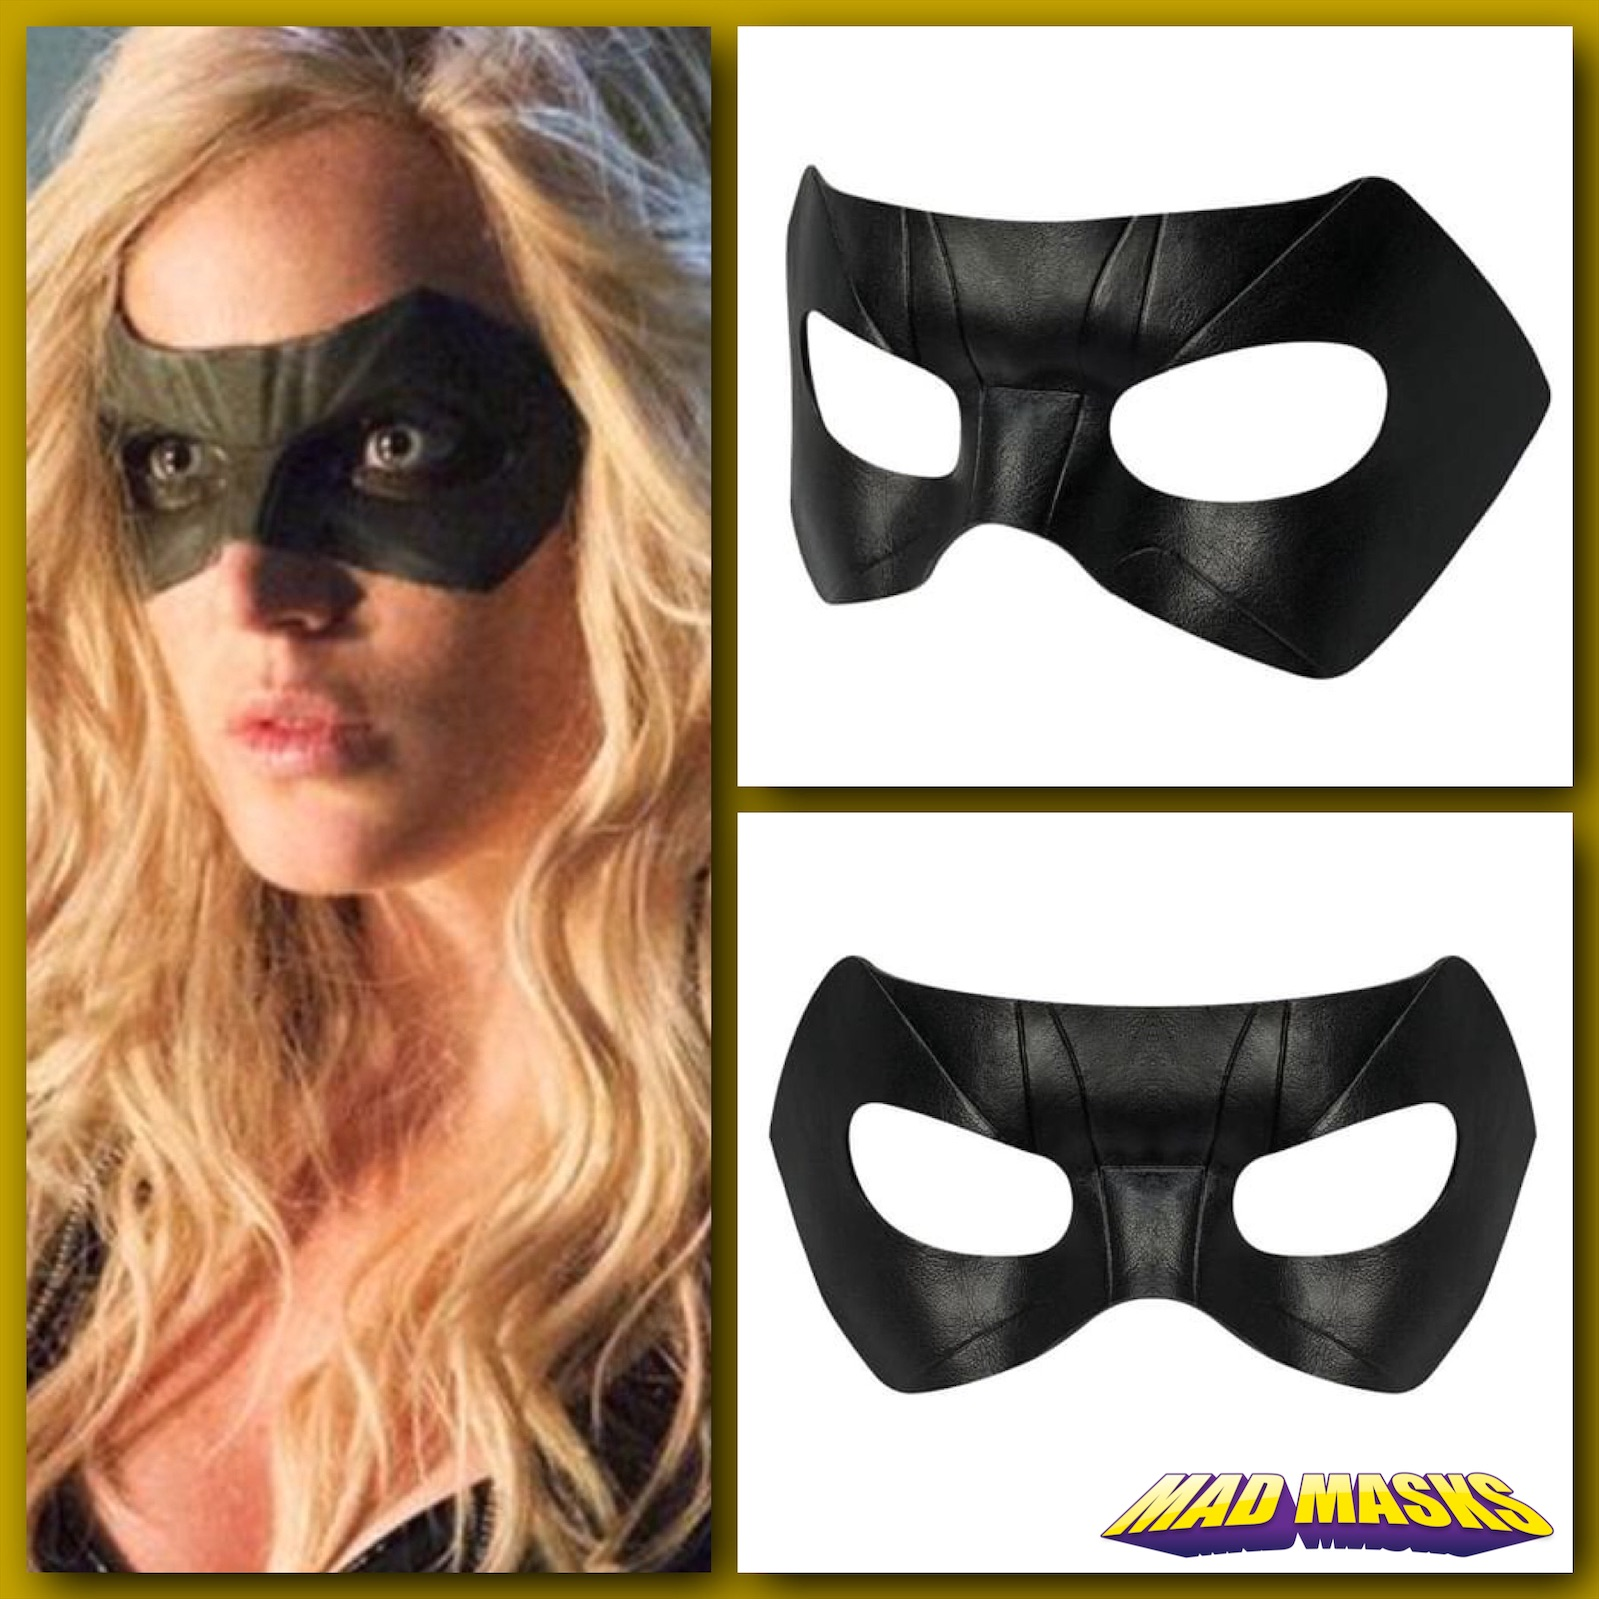 black-canary-sara-lance-mask-web.jpg